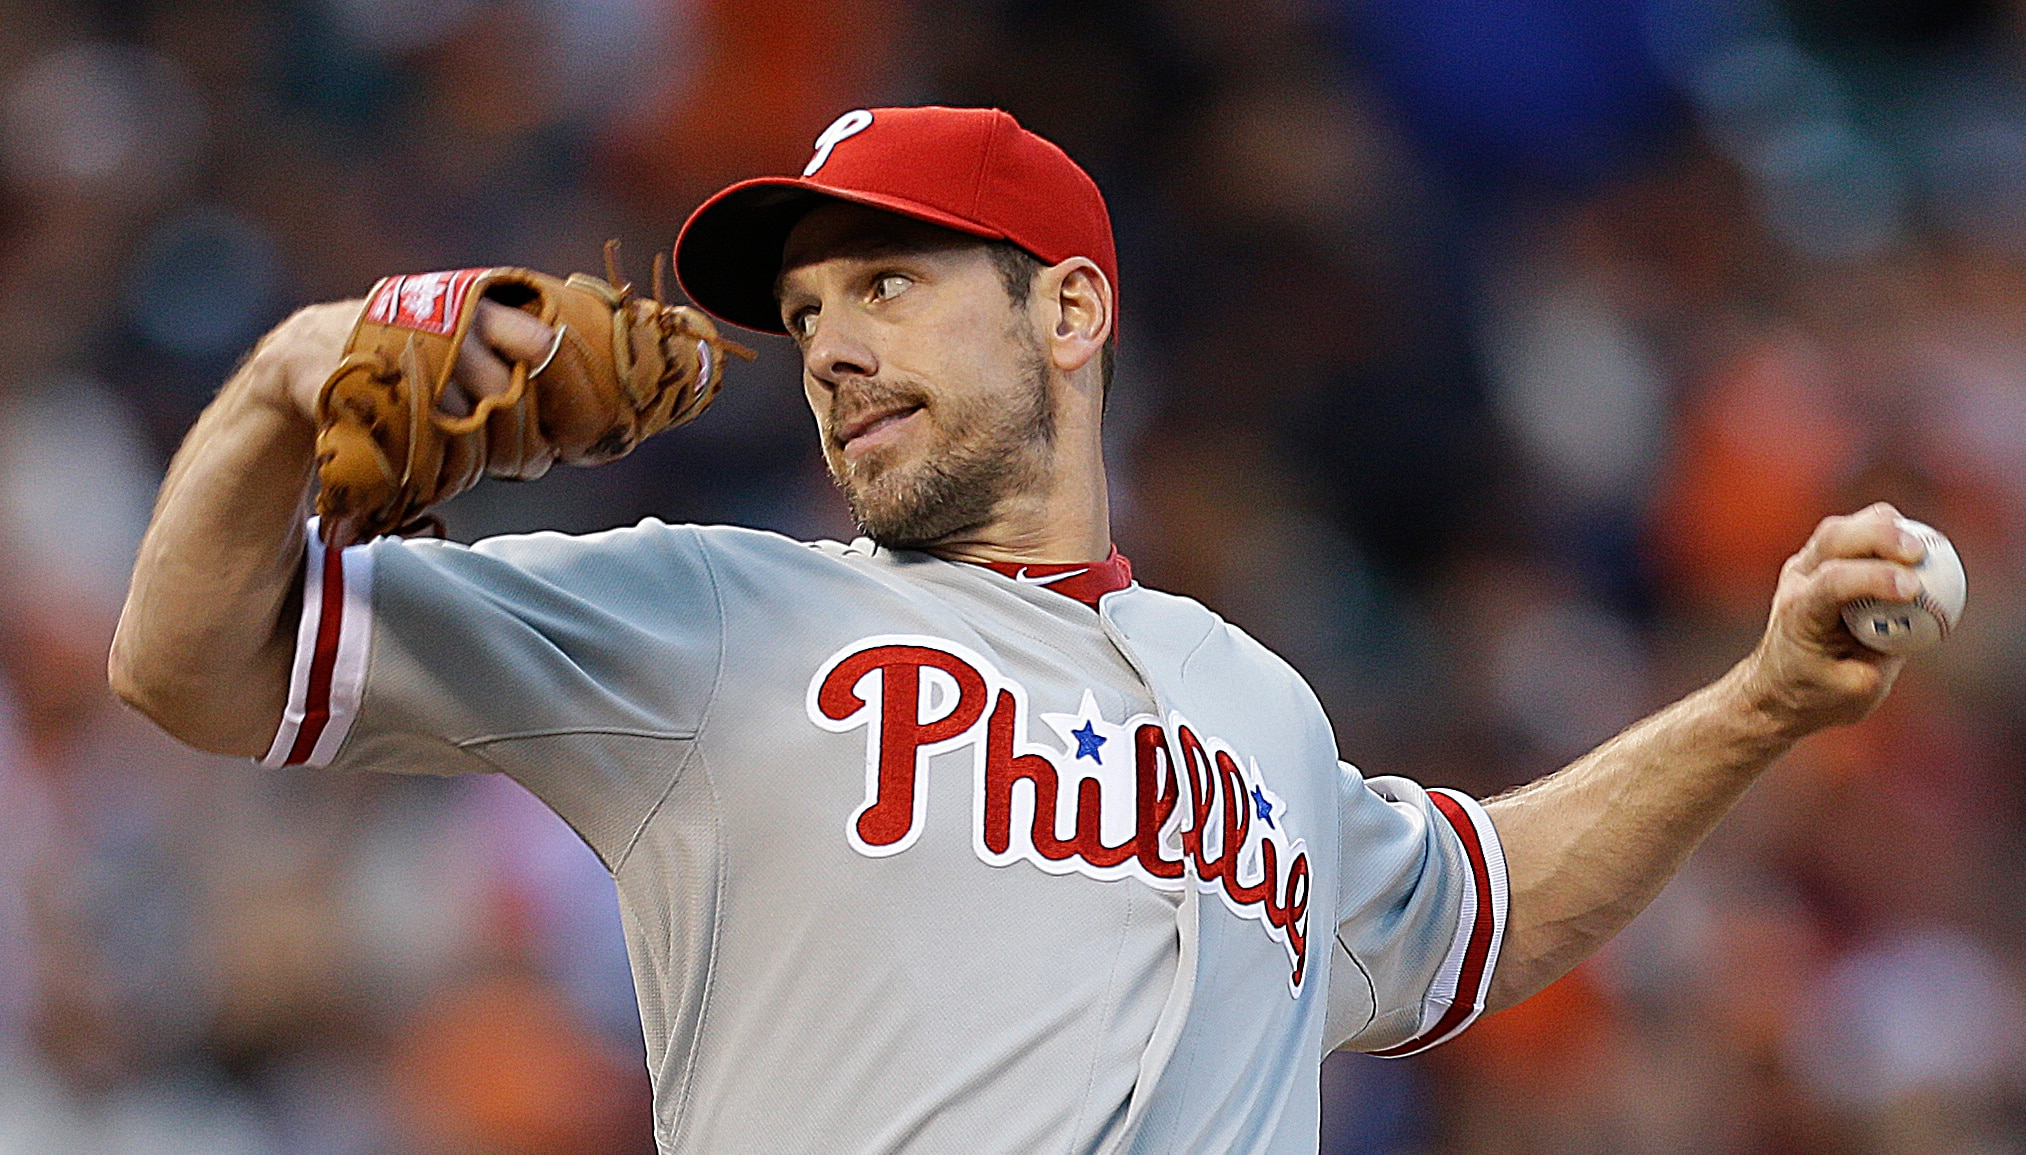 Courtesy of MLB.com: Despite injury and contract concerns, Lee could be moved.